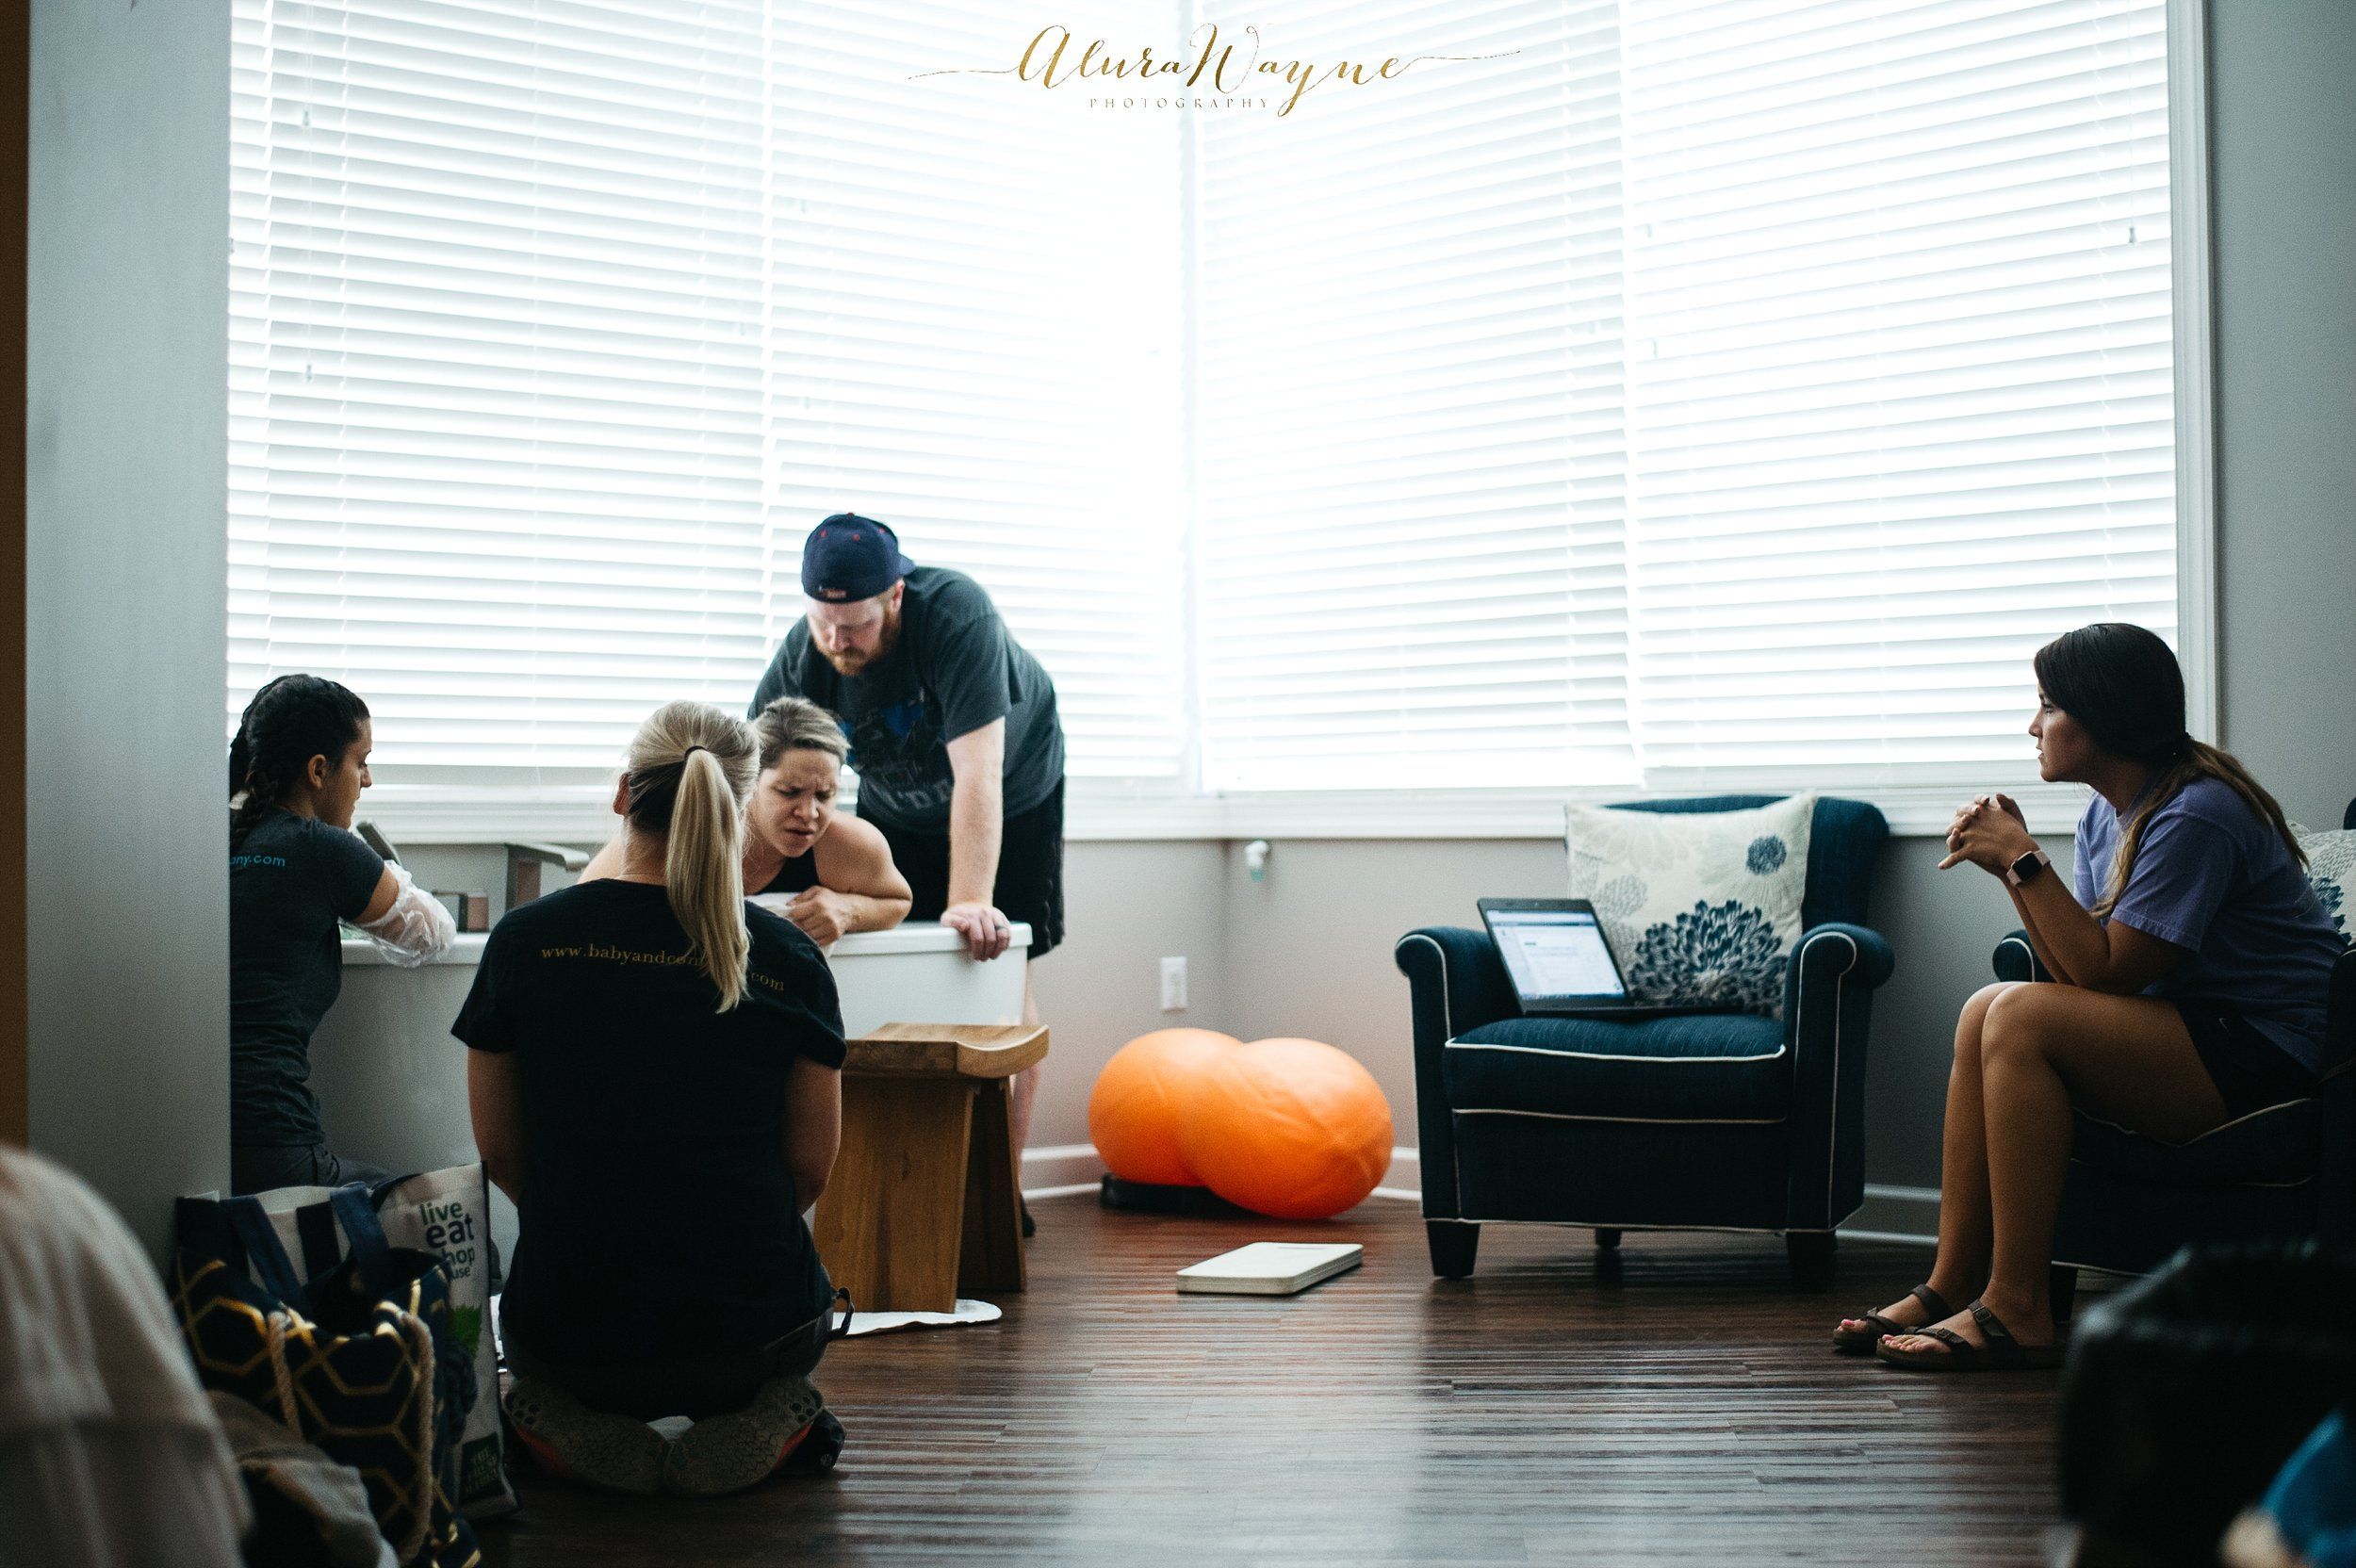 nashville tn birth photographers | alurawayne photography